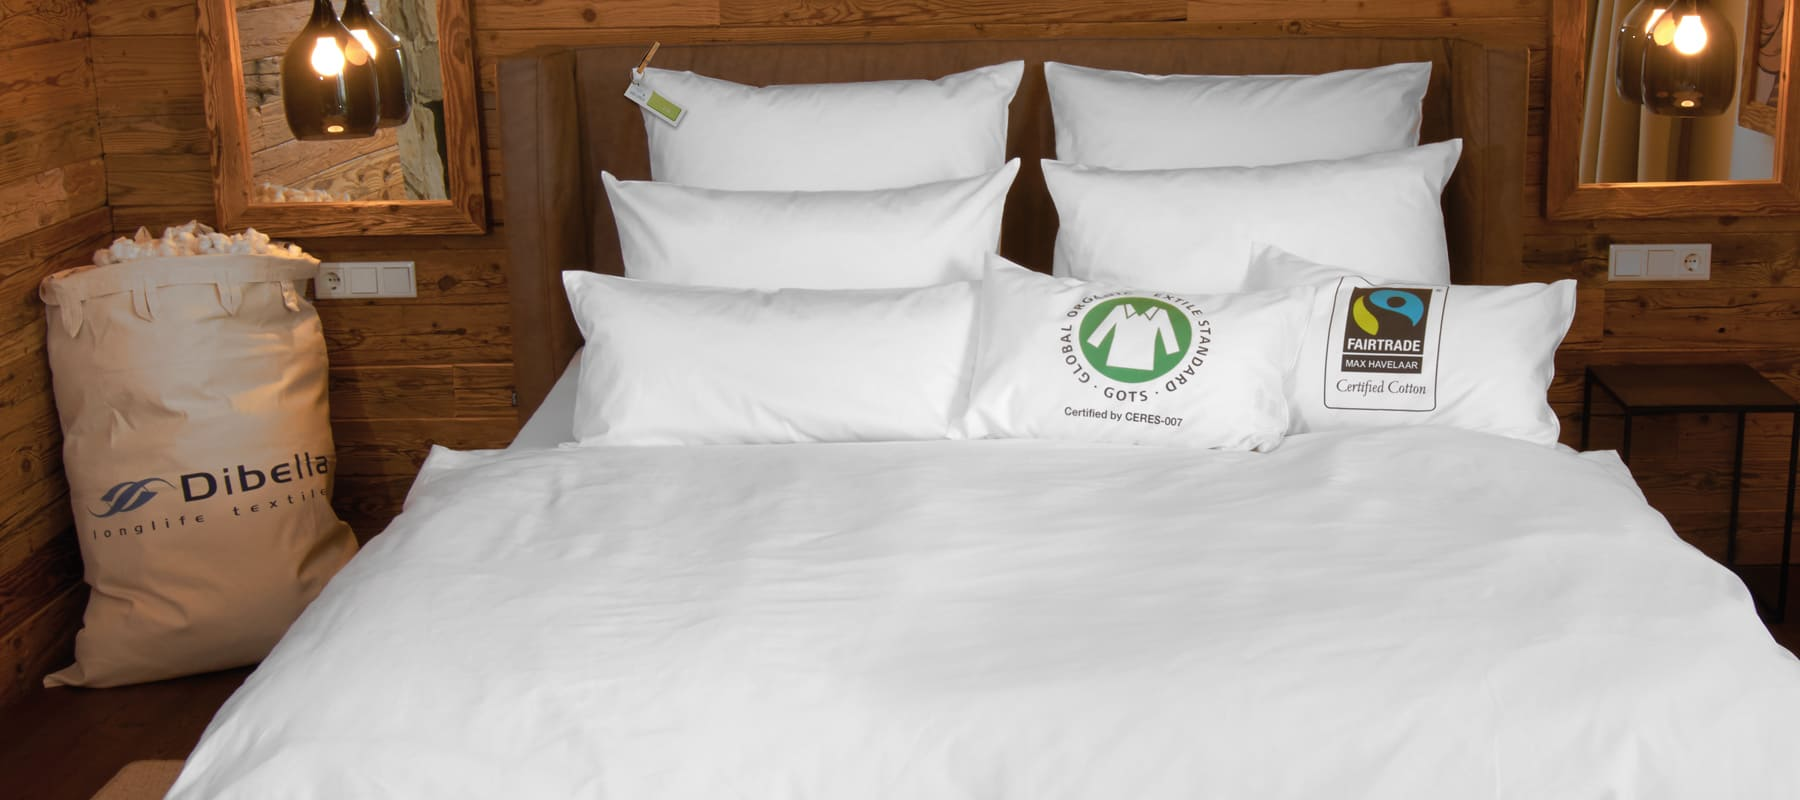 Experience Dibella+ products made from certified organic Fairtrade cotton